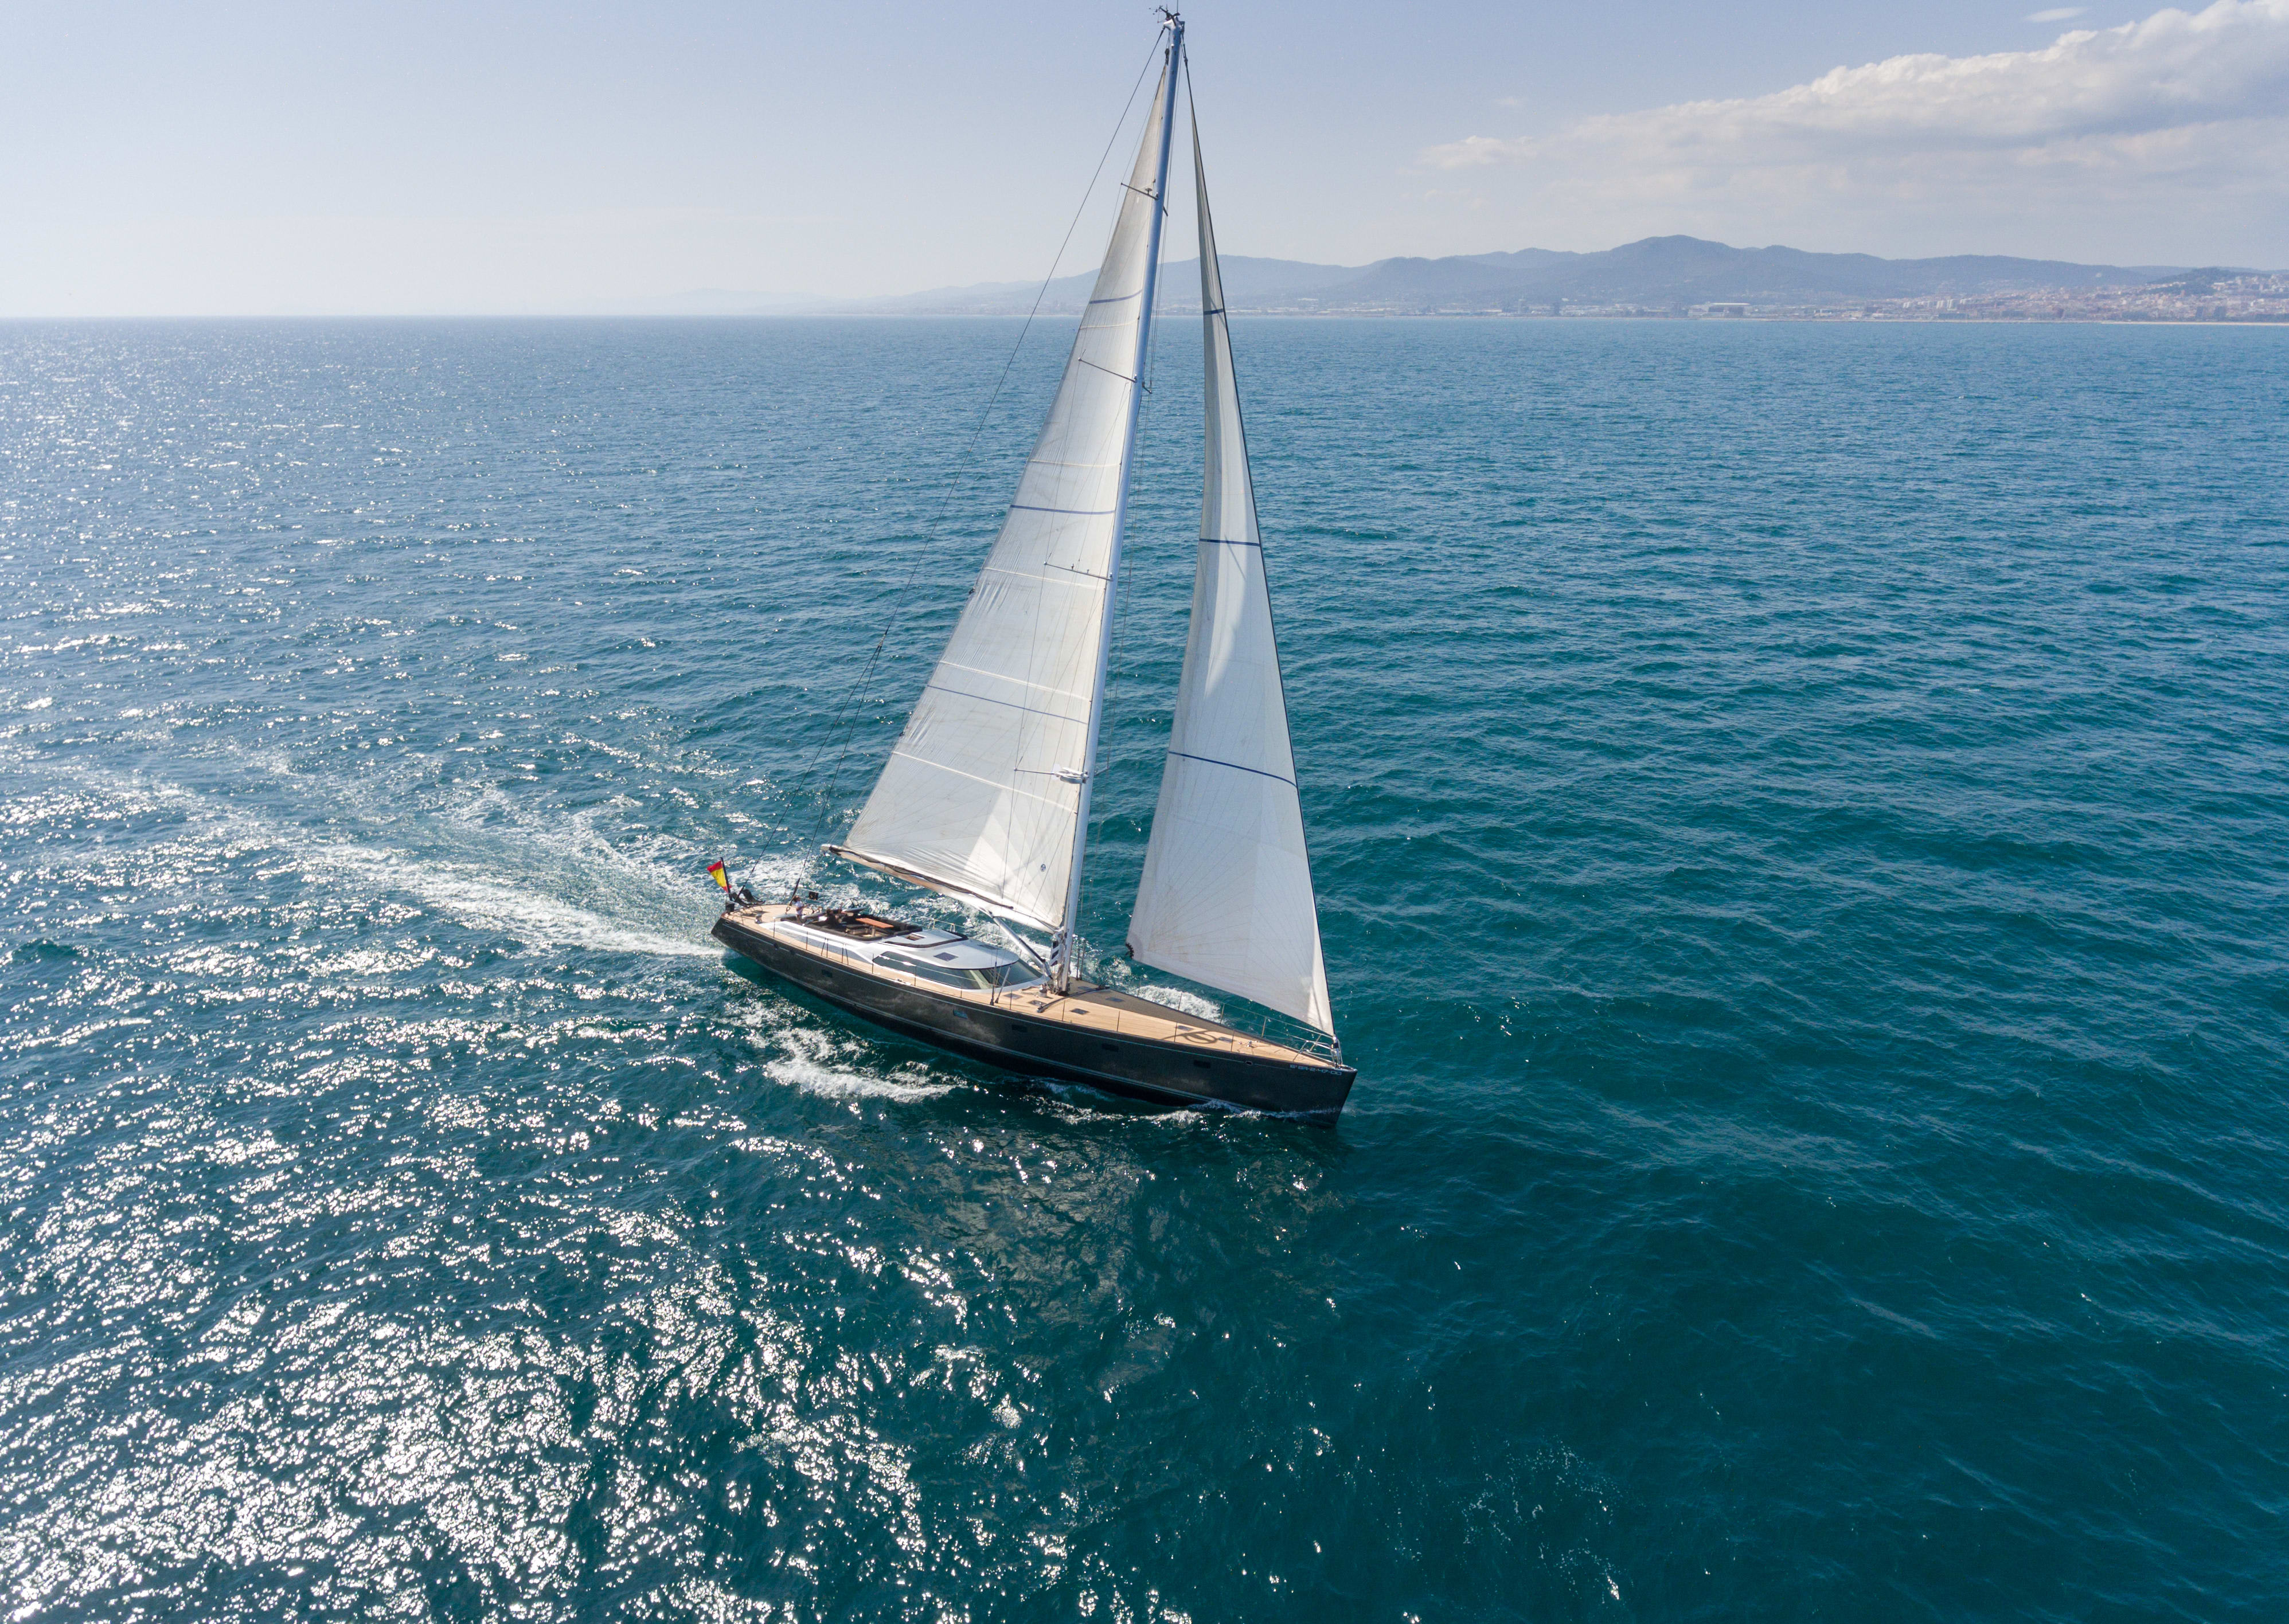 Image of Concordia 28.8M (94.5FT) sailing yacht